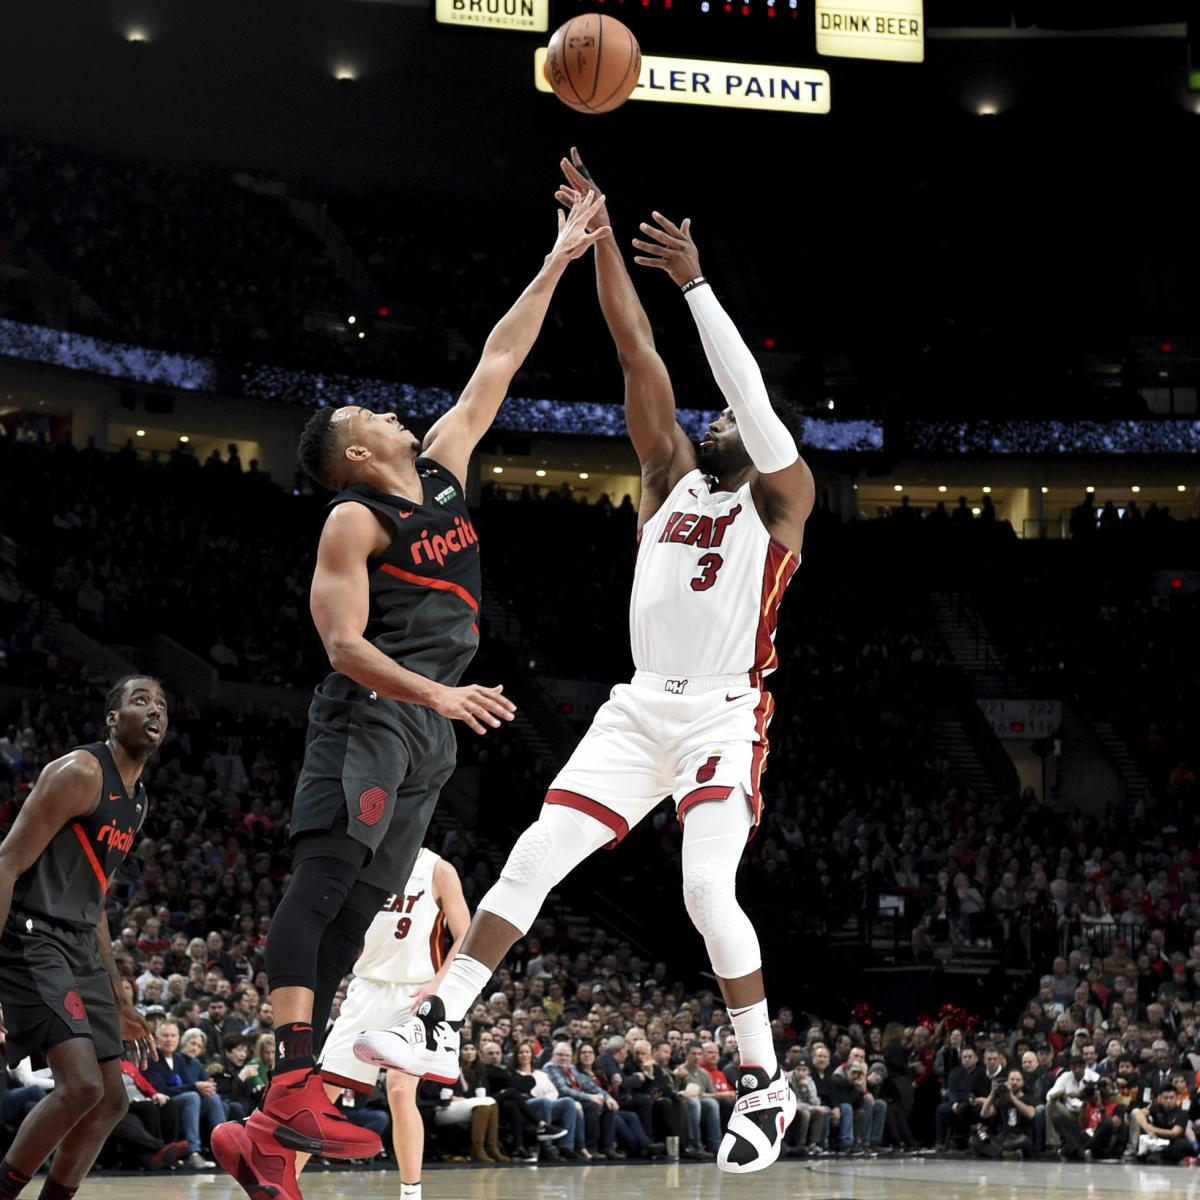 Portland Blazers Last Game: Dwyane Wade Leads Heat To Win Vs. Damian Lillard, Trail